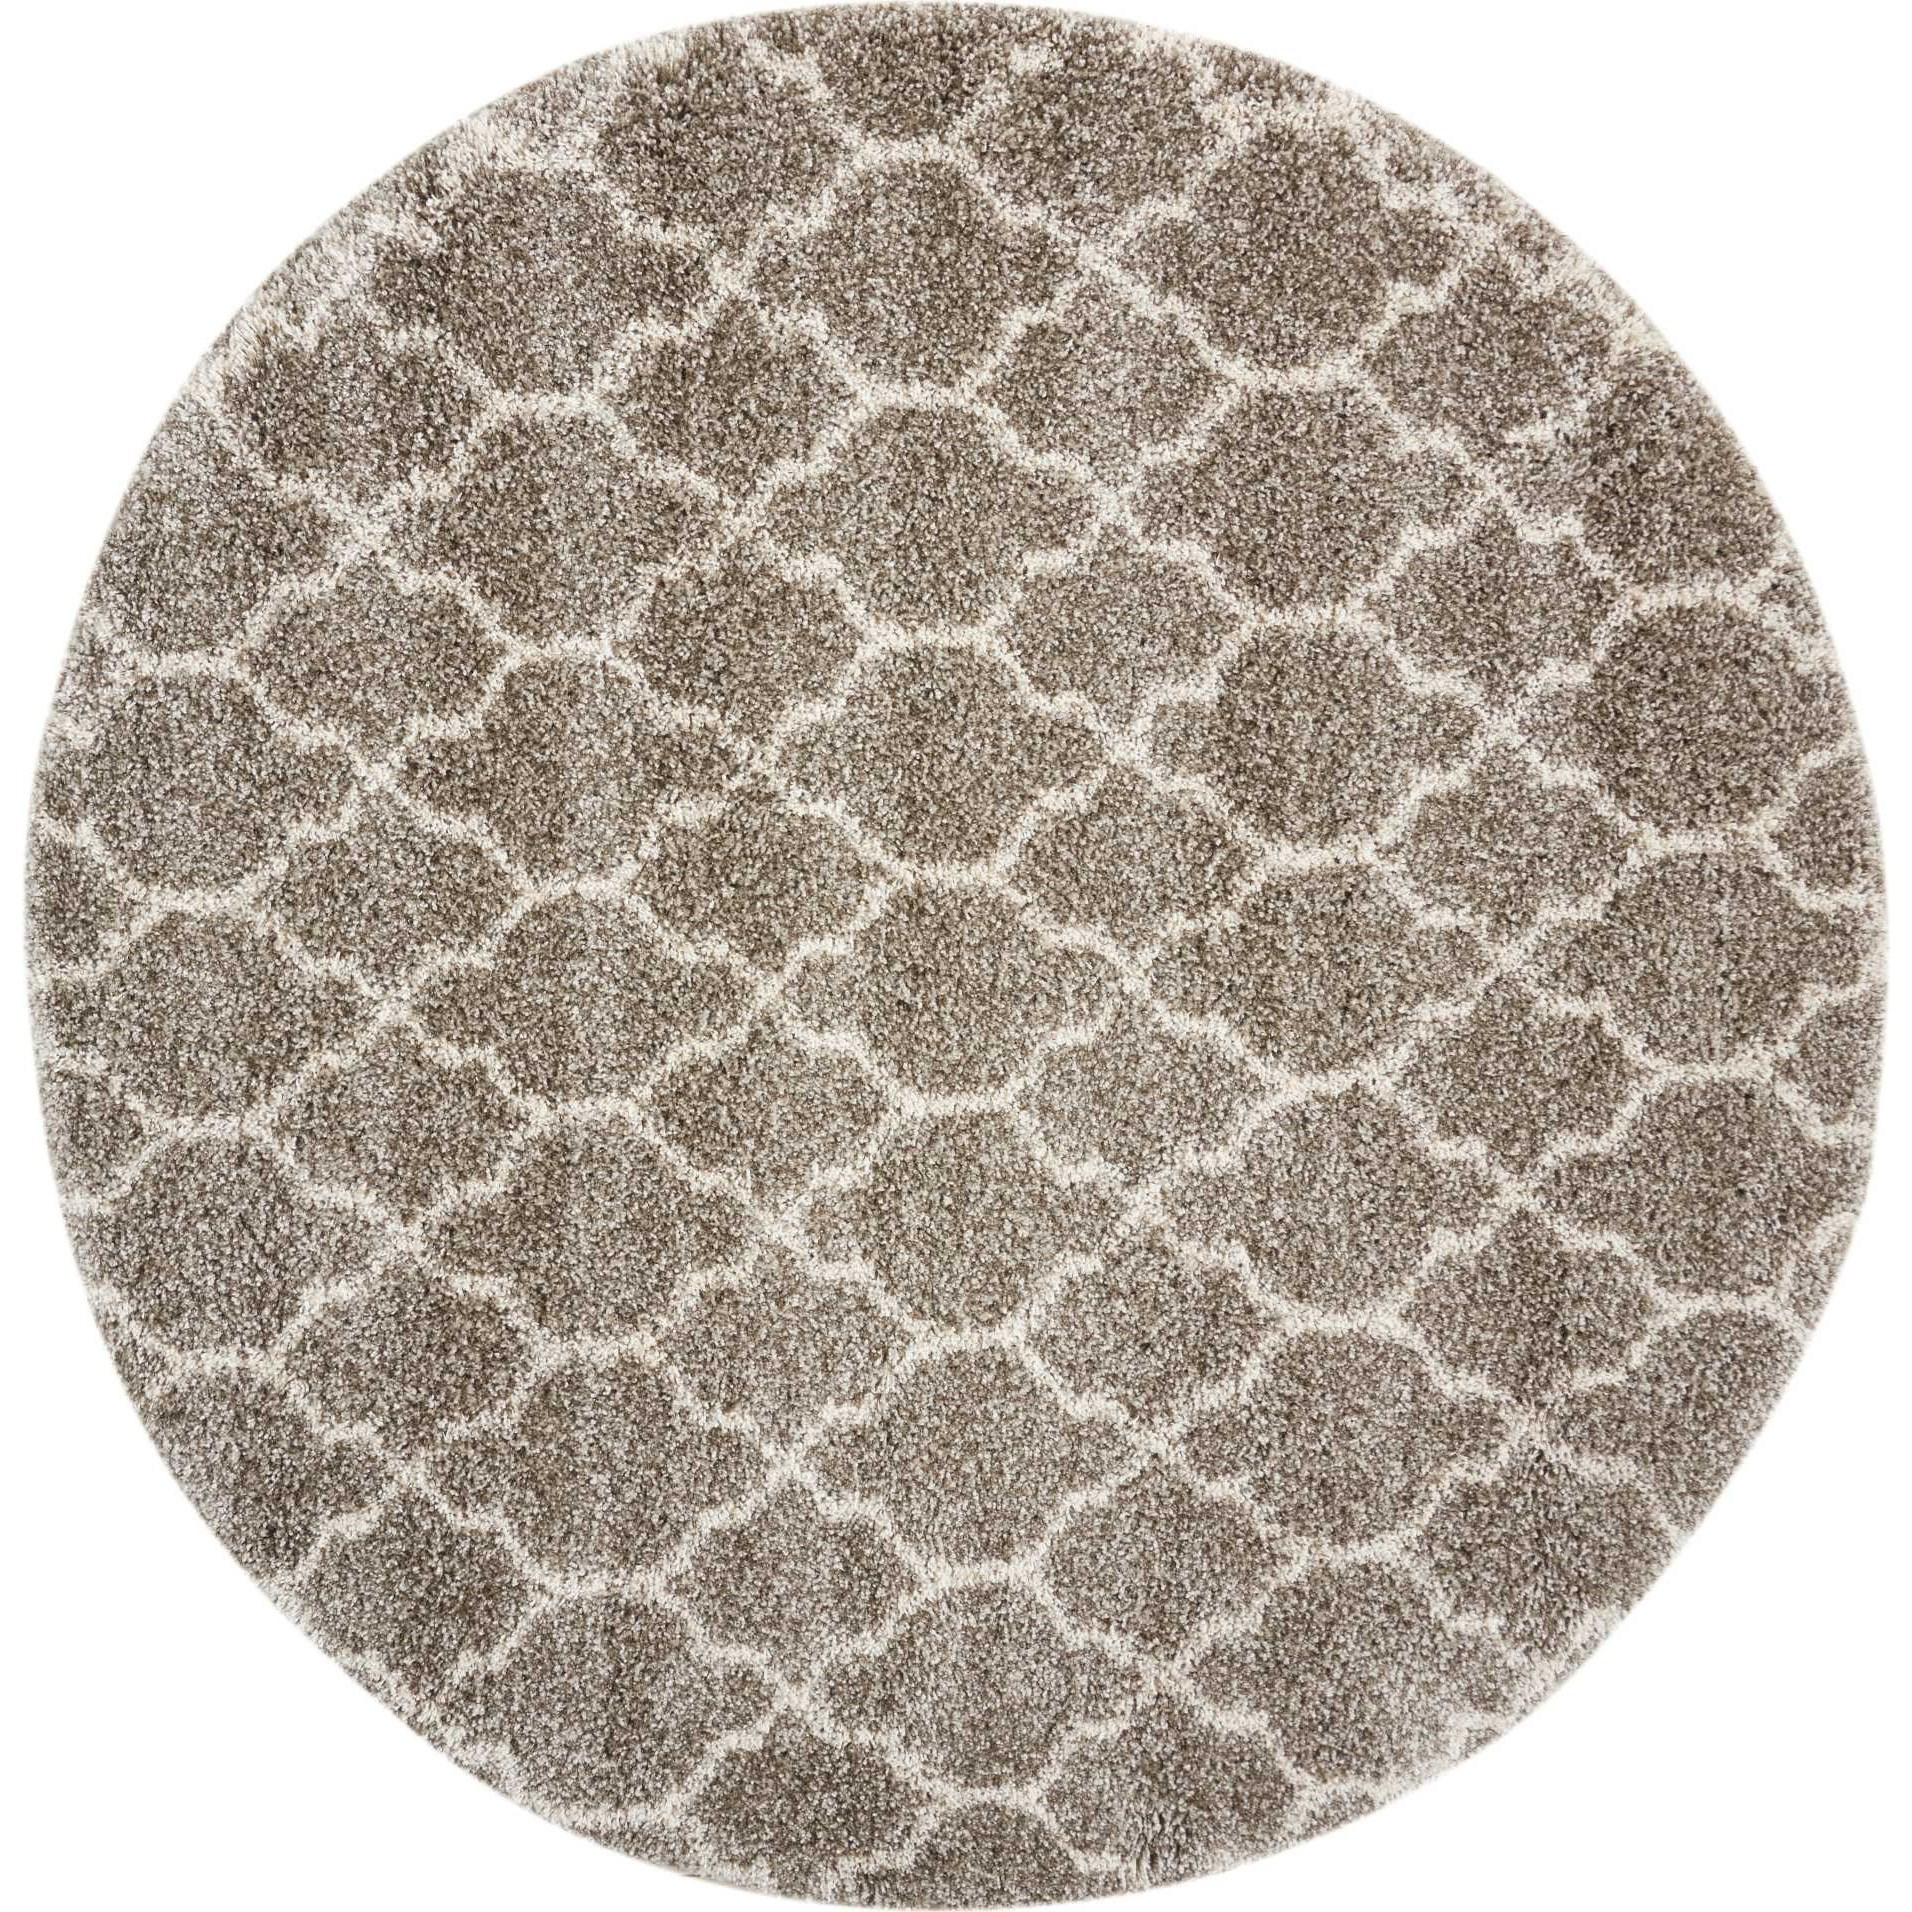 """Amore 6'7"""" x 6'7"""" Stone Round Rug by Nourison at Sprintz Furniture"""